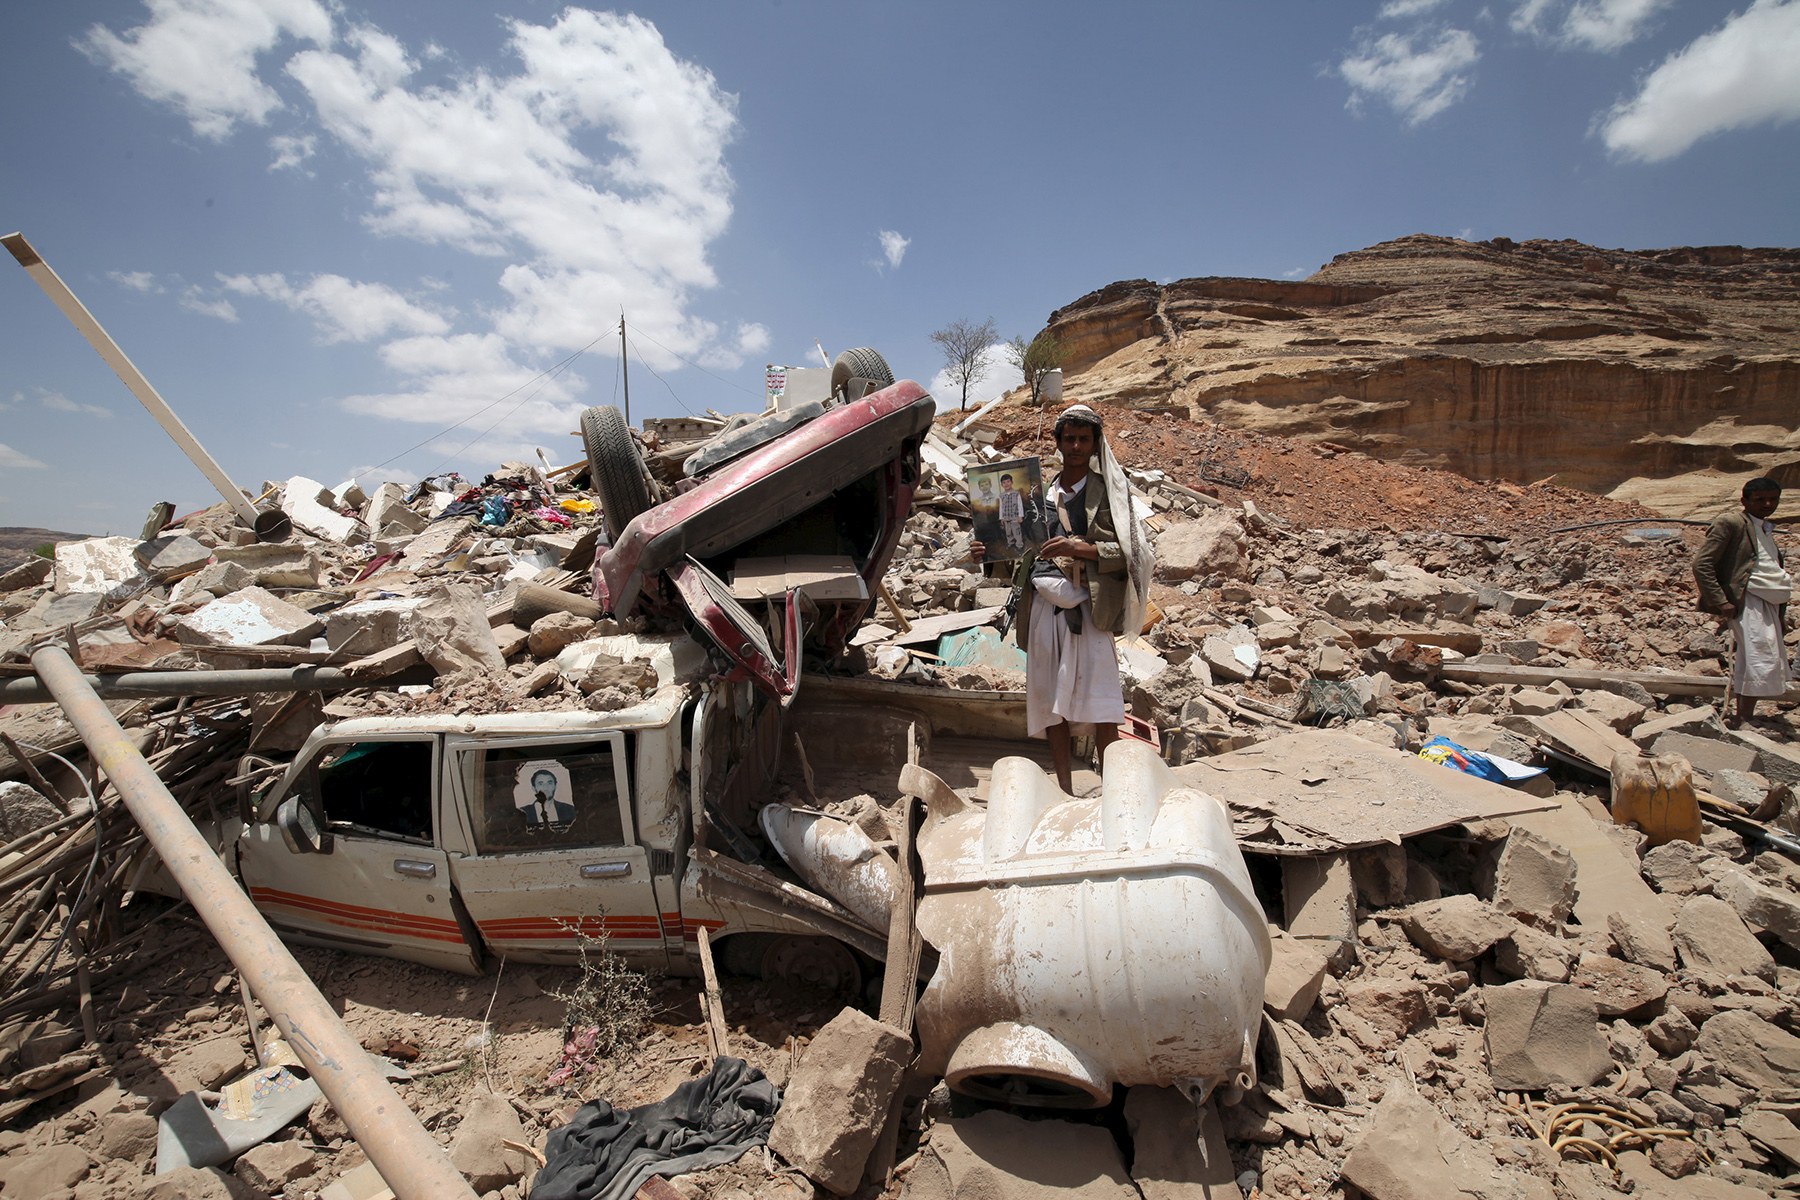 A Houthi militant stands amidst debris from a house.